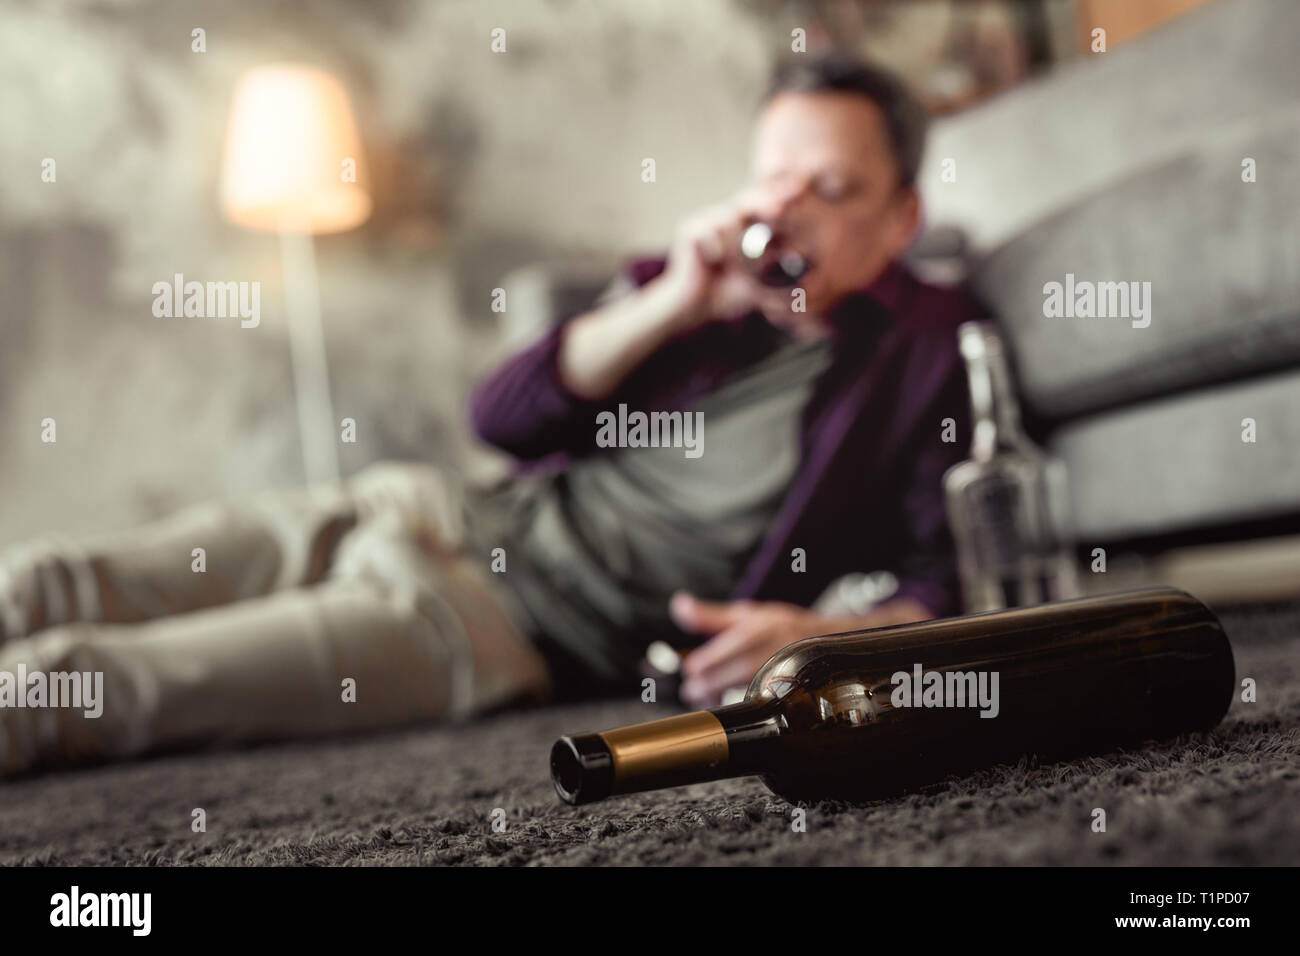 Adult man lying on carpet in living room with empty bottles around - Stock Image